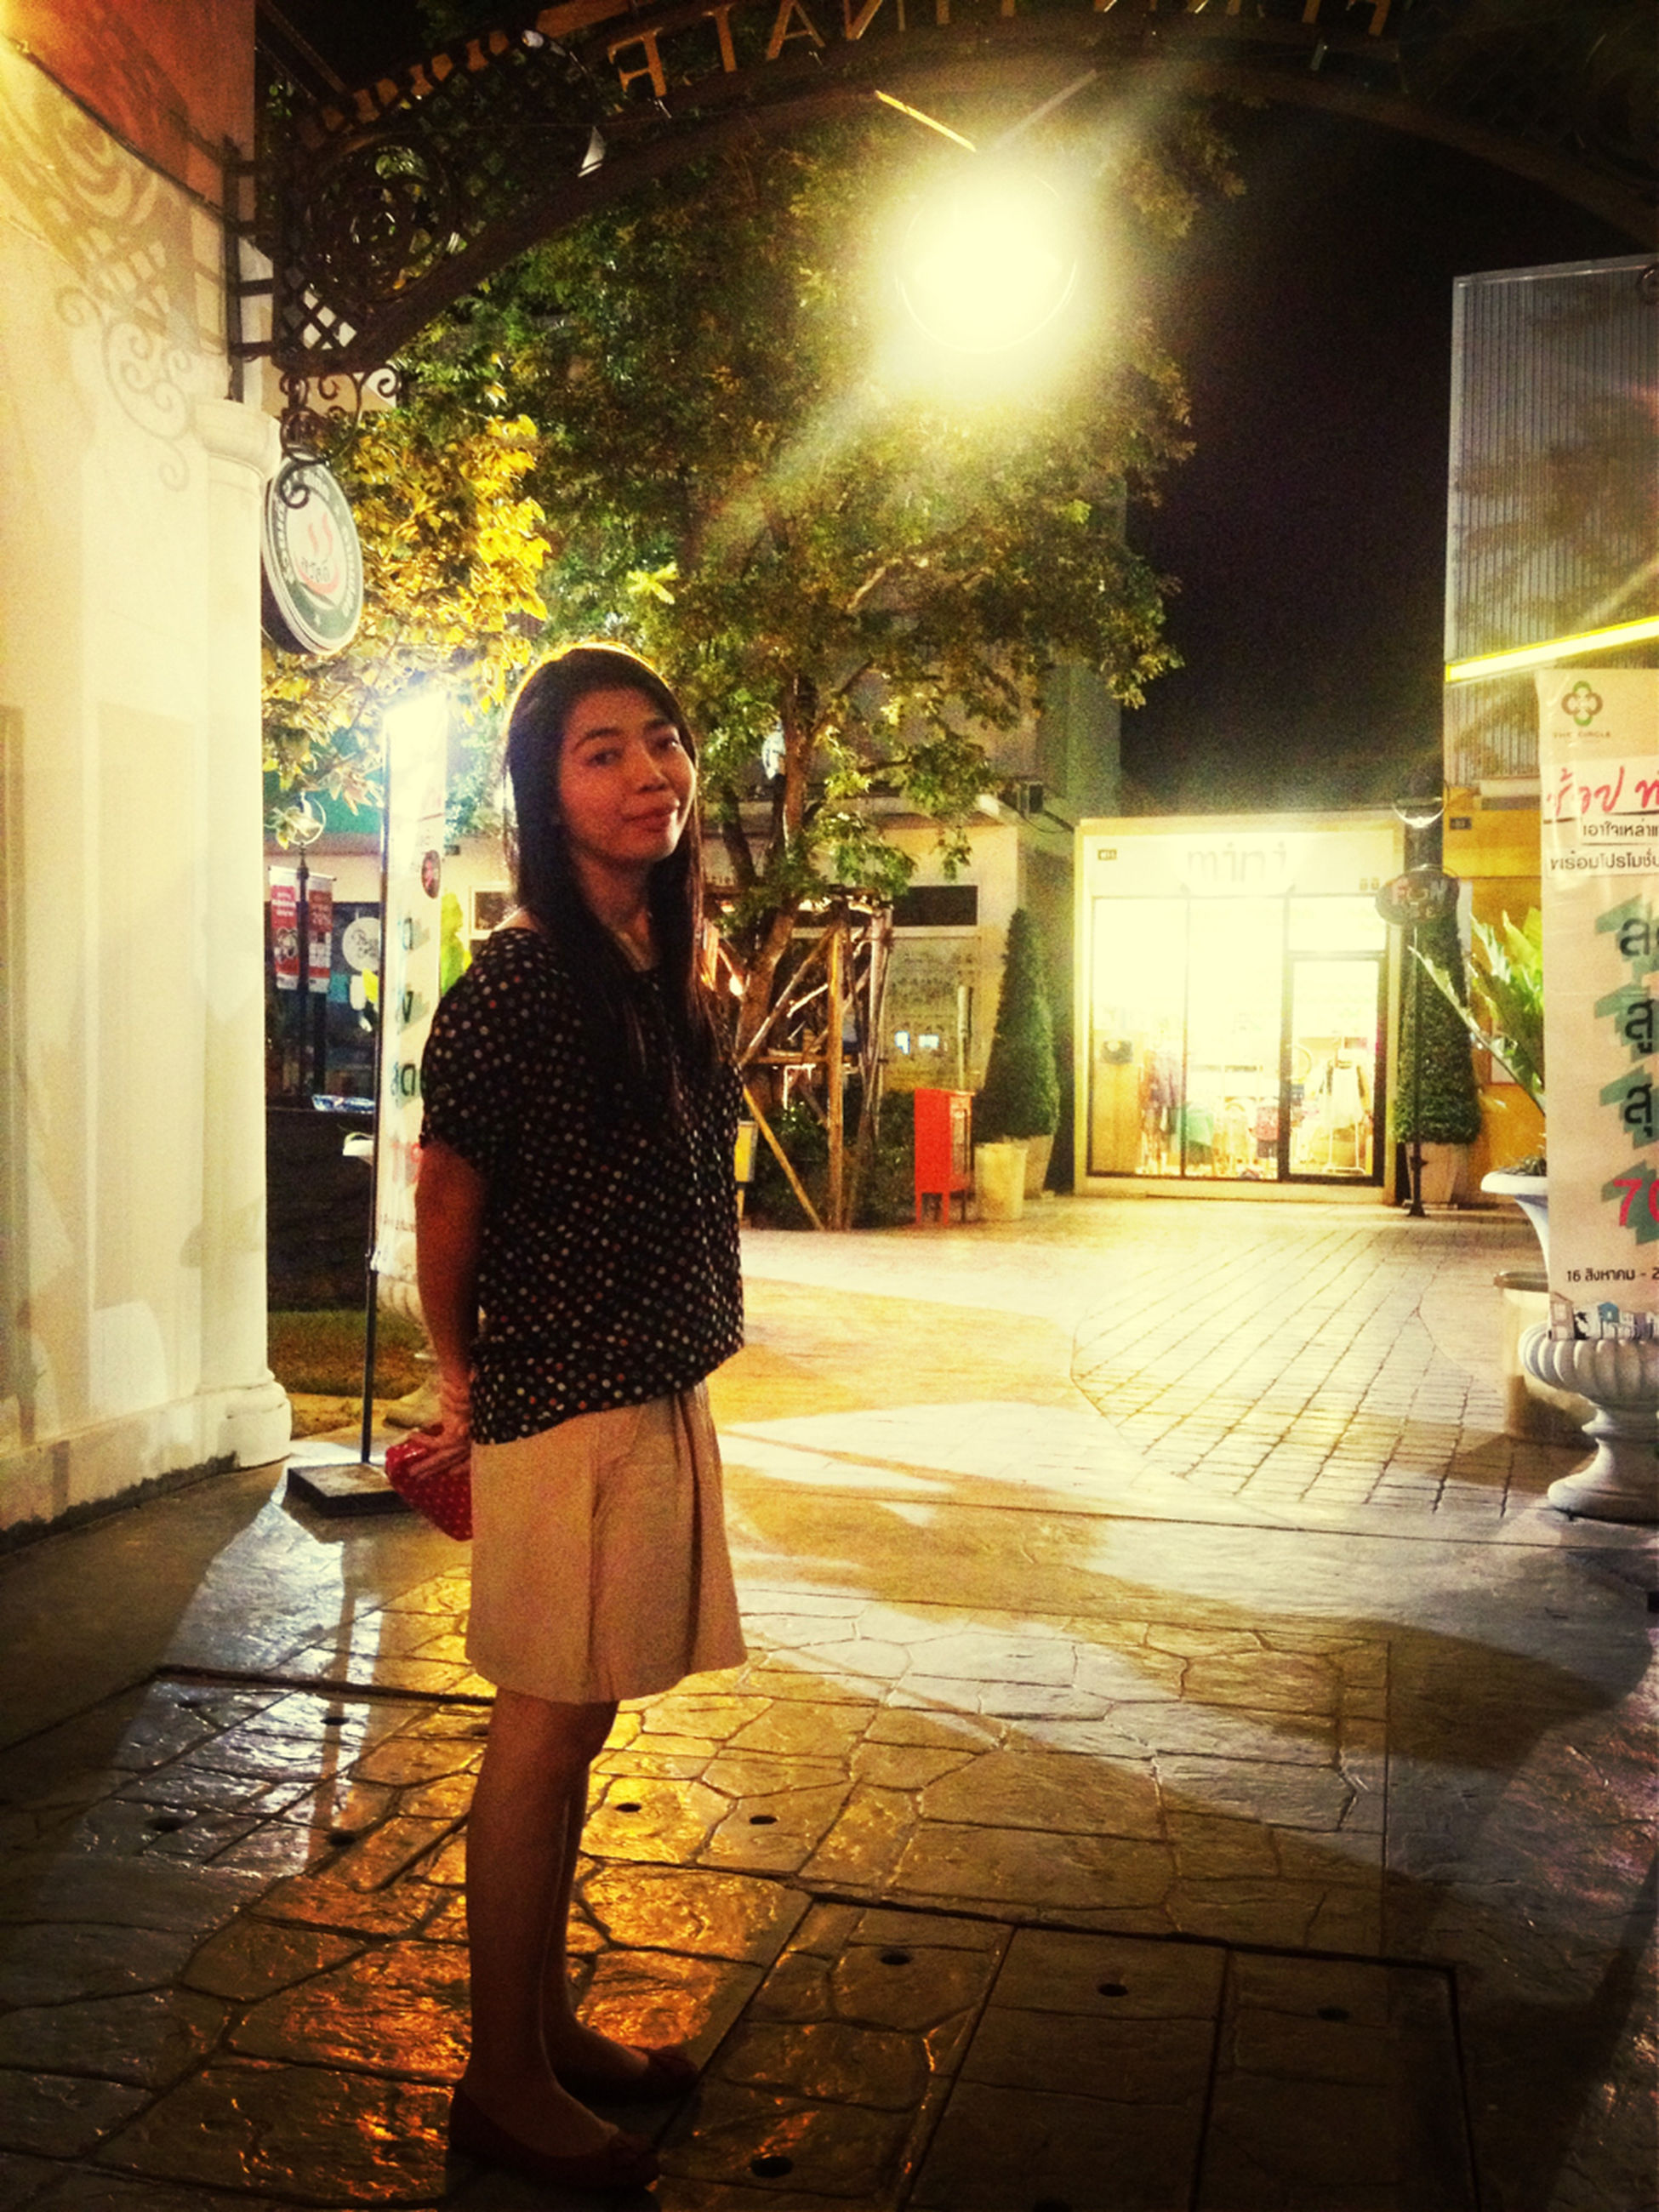 lifestyles, casual clothing, standing, full length, young adult, front view, looking at camera, building exterior, architecture, built structure, portrait, person, leisure activity, night, young women, illuminated, three quarter length